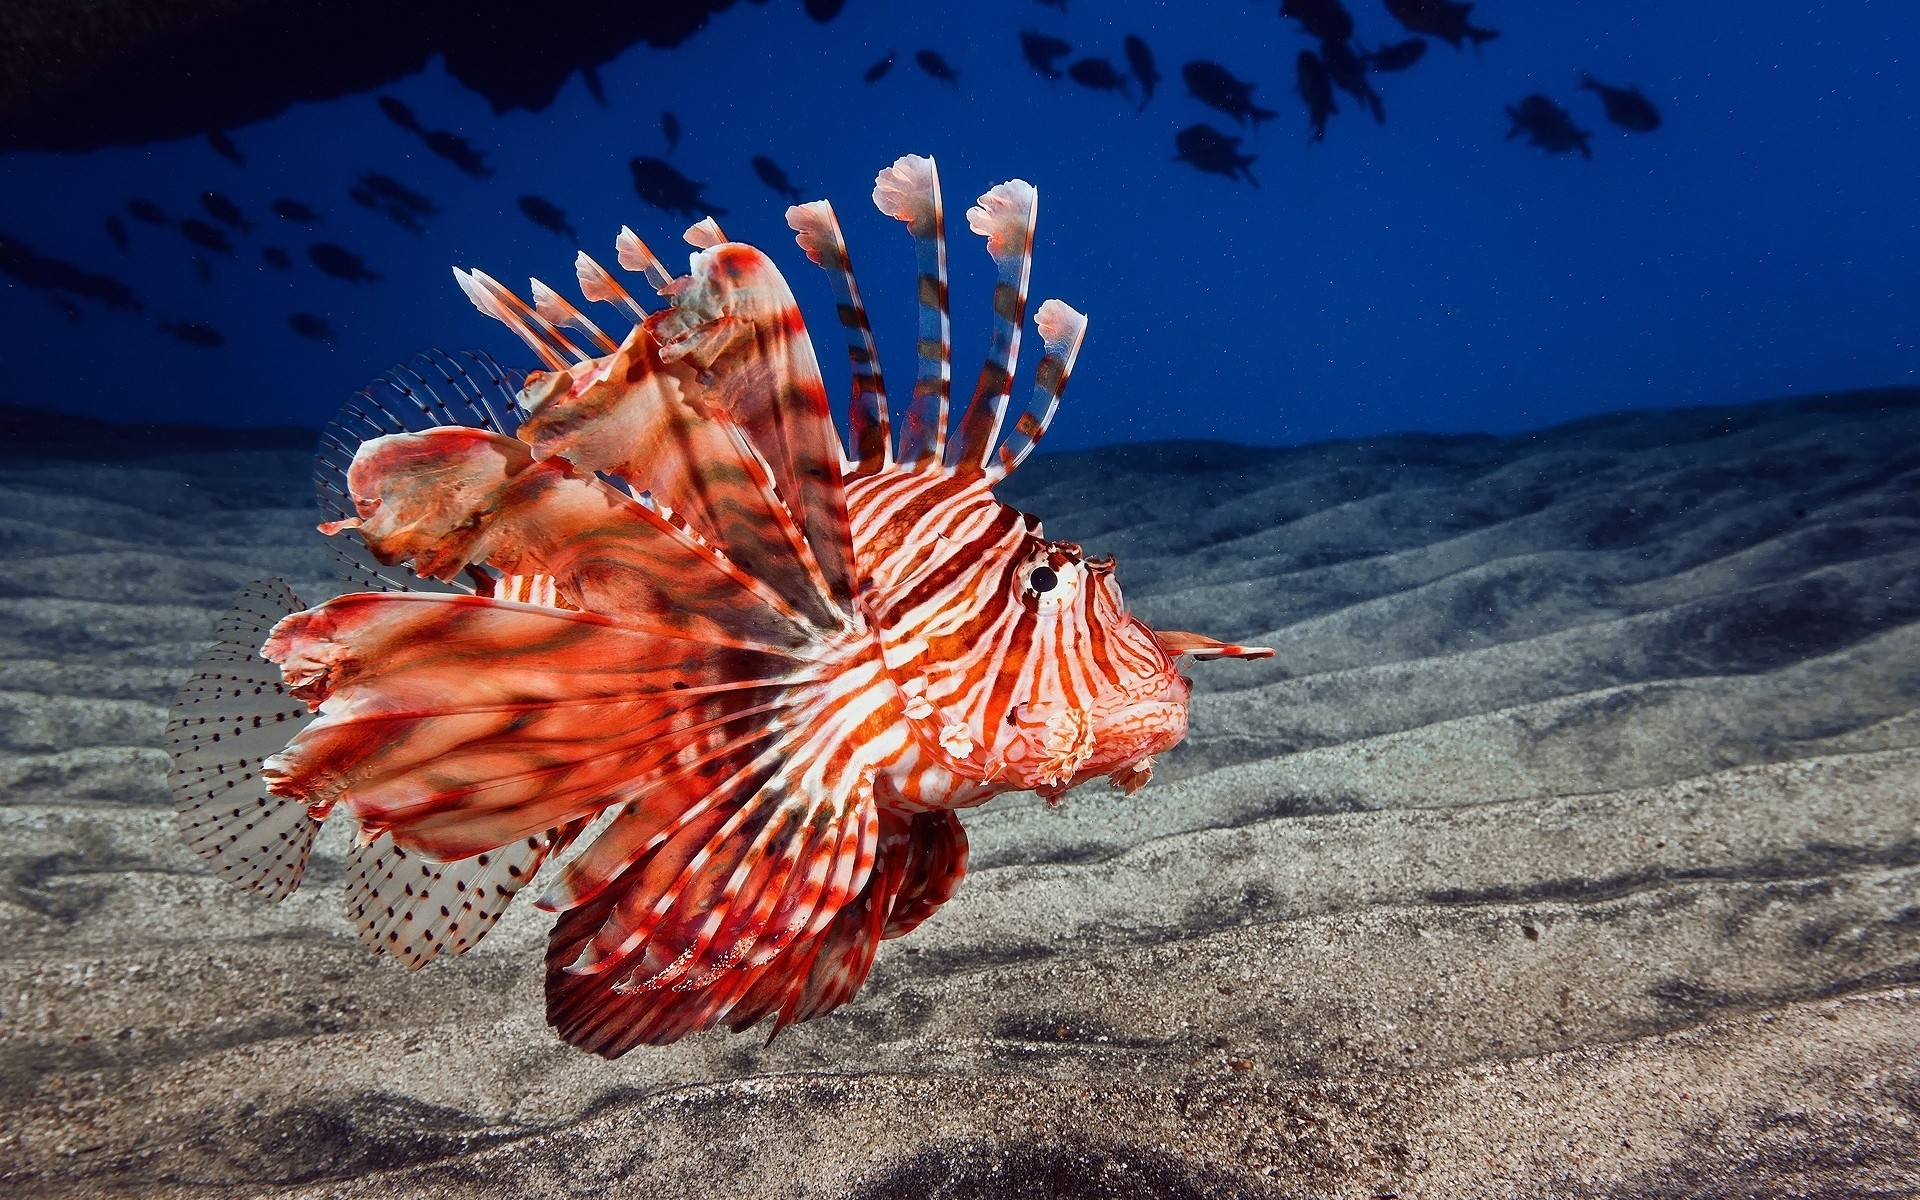 1920x1200 Lionfish animals fishes underwater sea ocean life sand color fins eyes  wallpaper |  | 26684